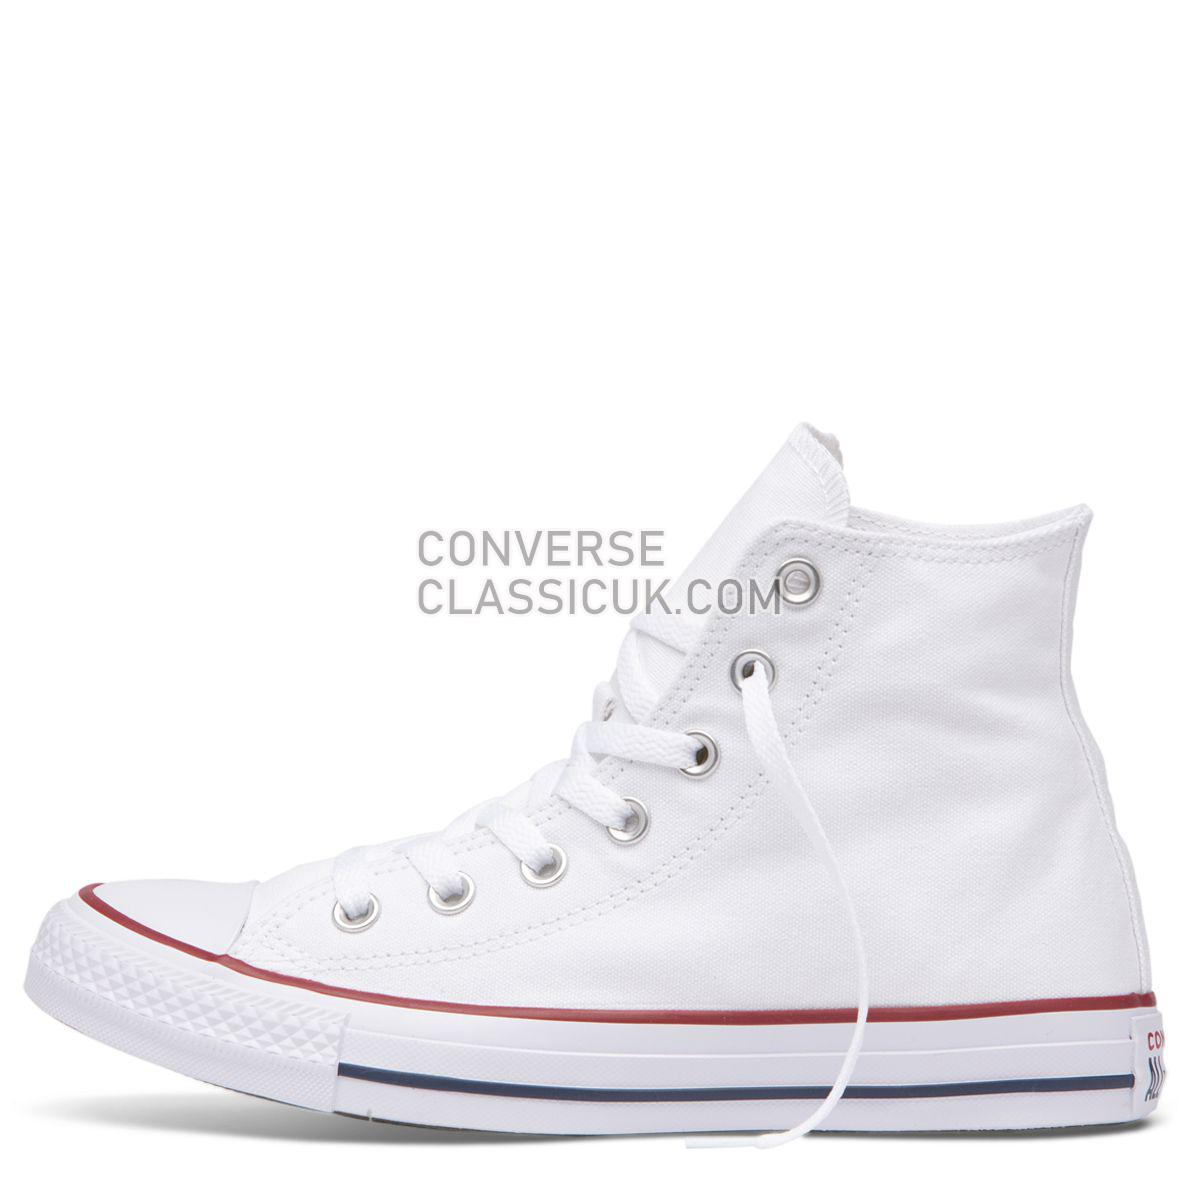 Converse Chuck Taylor All Star Classic Colour High Top White Mens Womens Unisex 17650 White Shoes